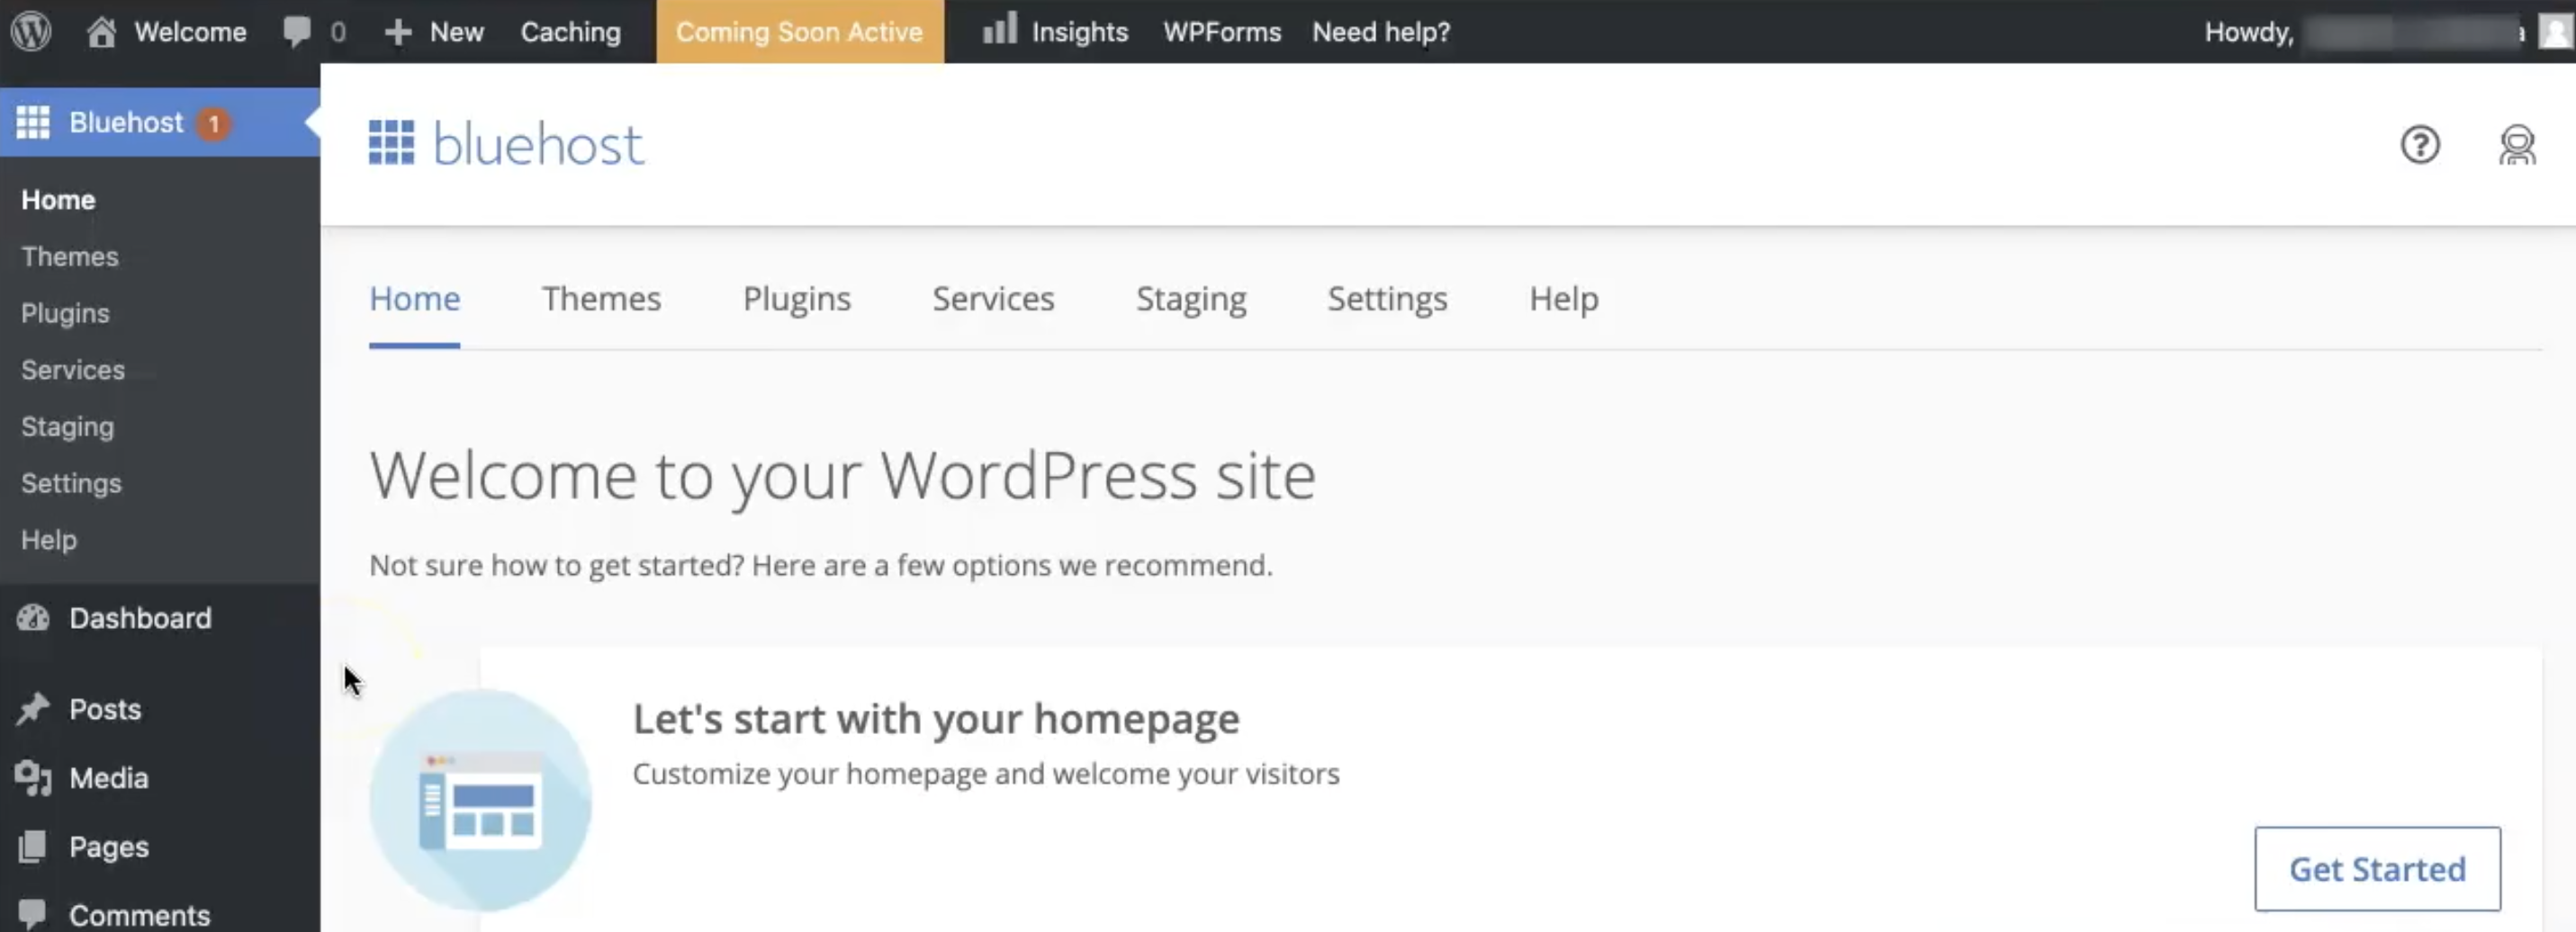 How to Start a WordPress Blog with Bluehost for Beginners